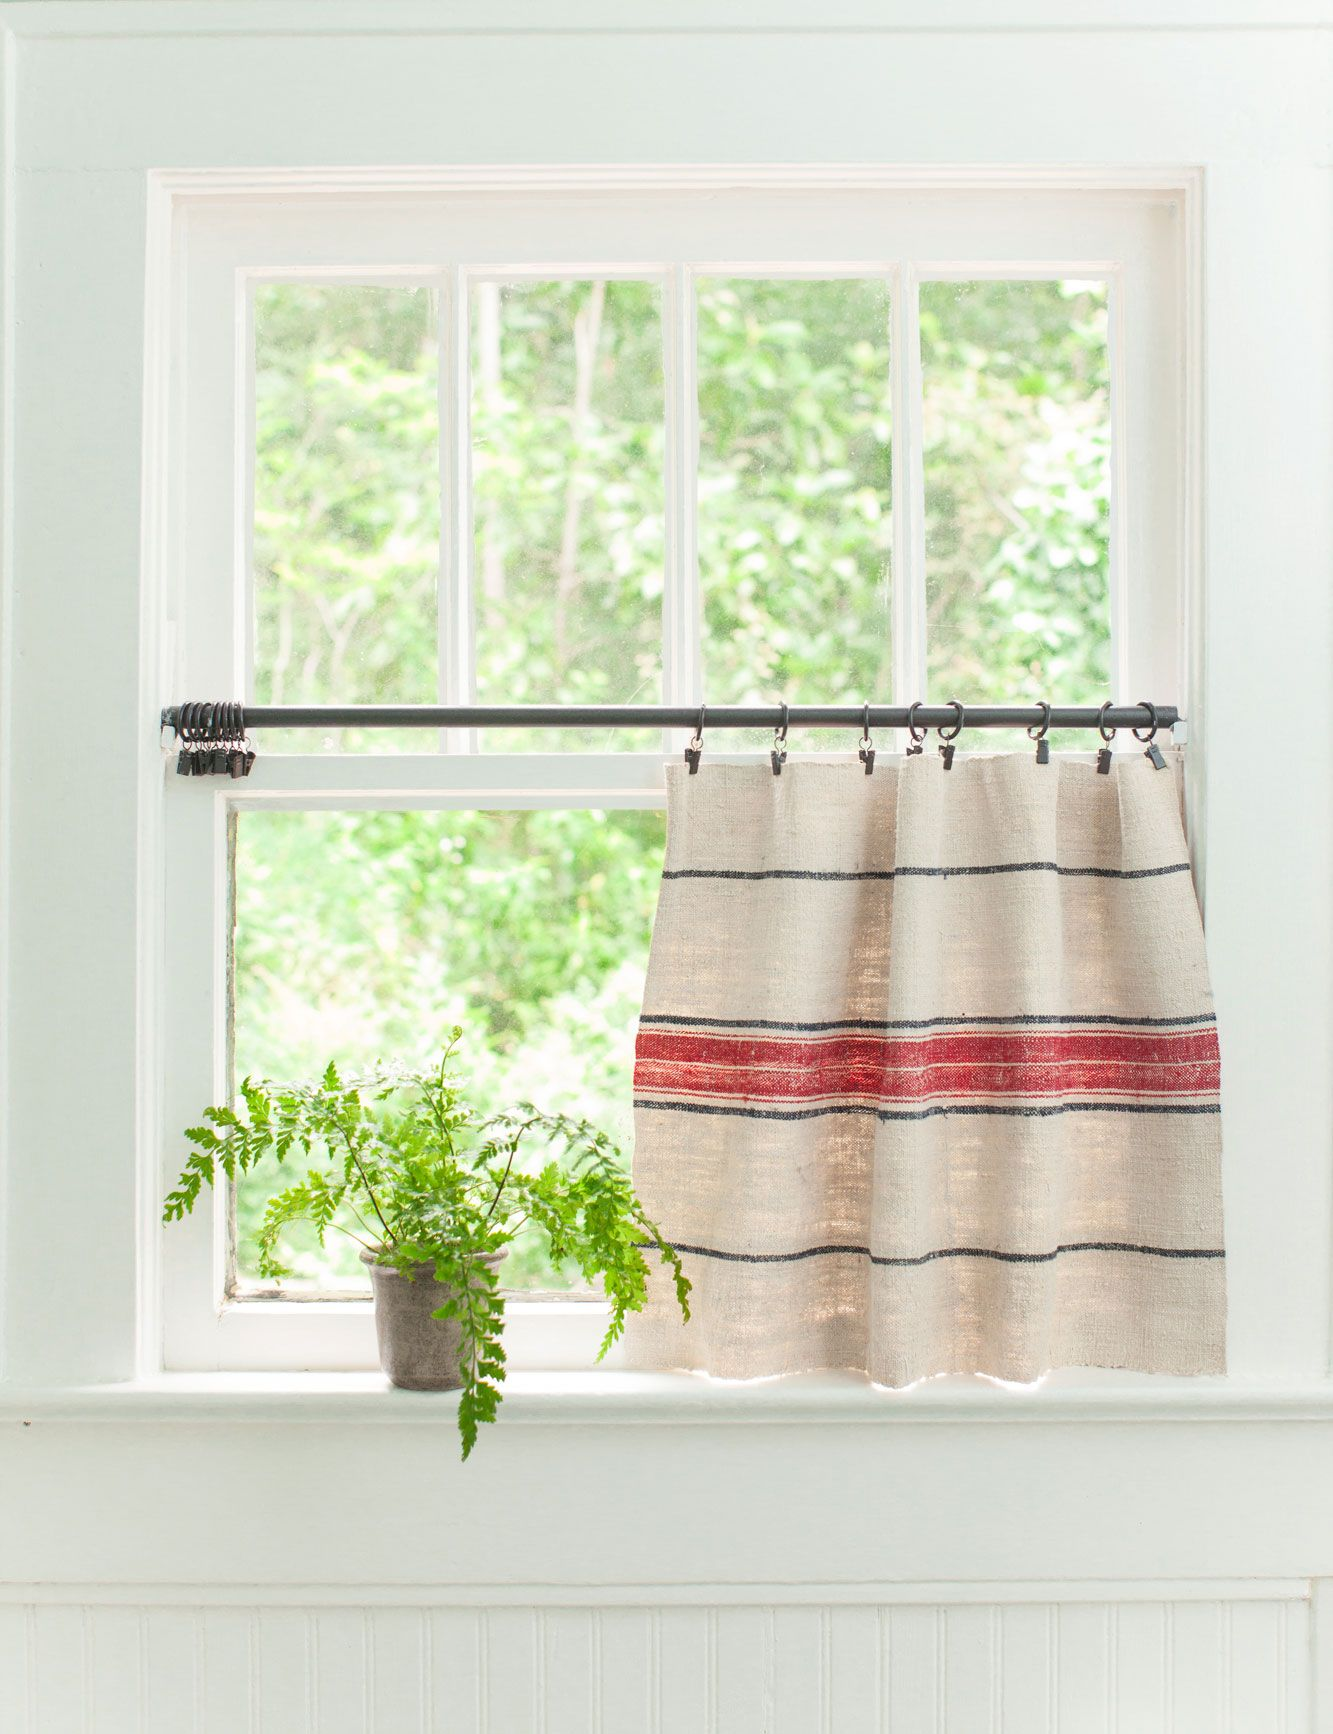 Cafe curtains for bathroom - 16 Grain Sack Inspired Crafts That Will Add Country Flair To Your Home Cafe Curtainskitchen